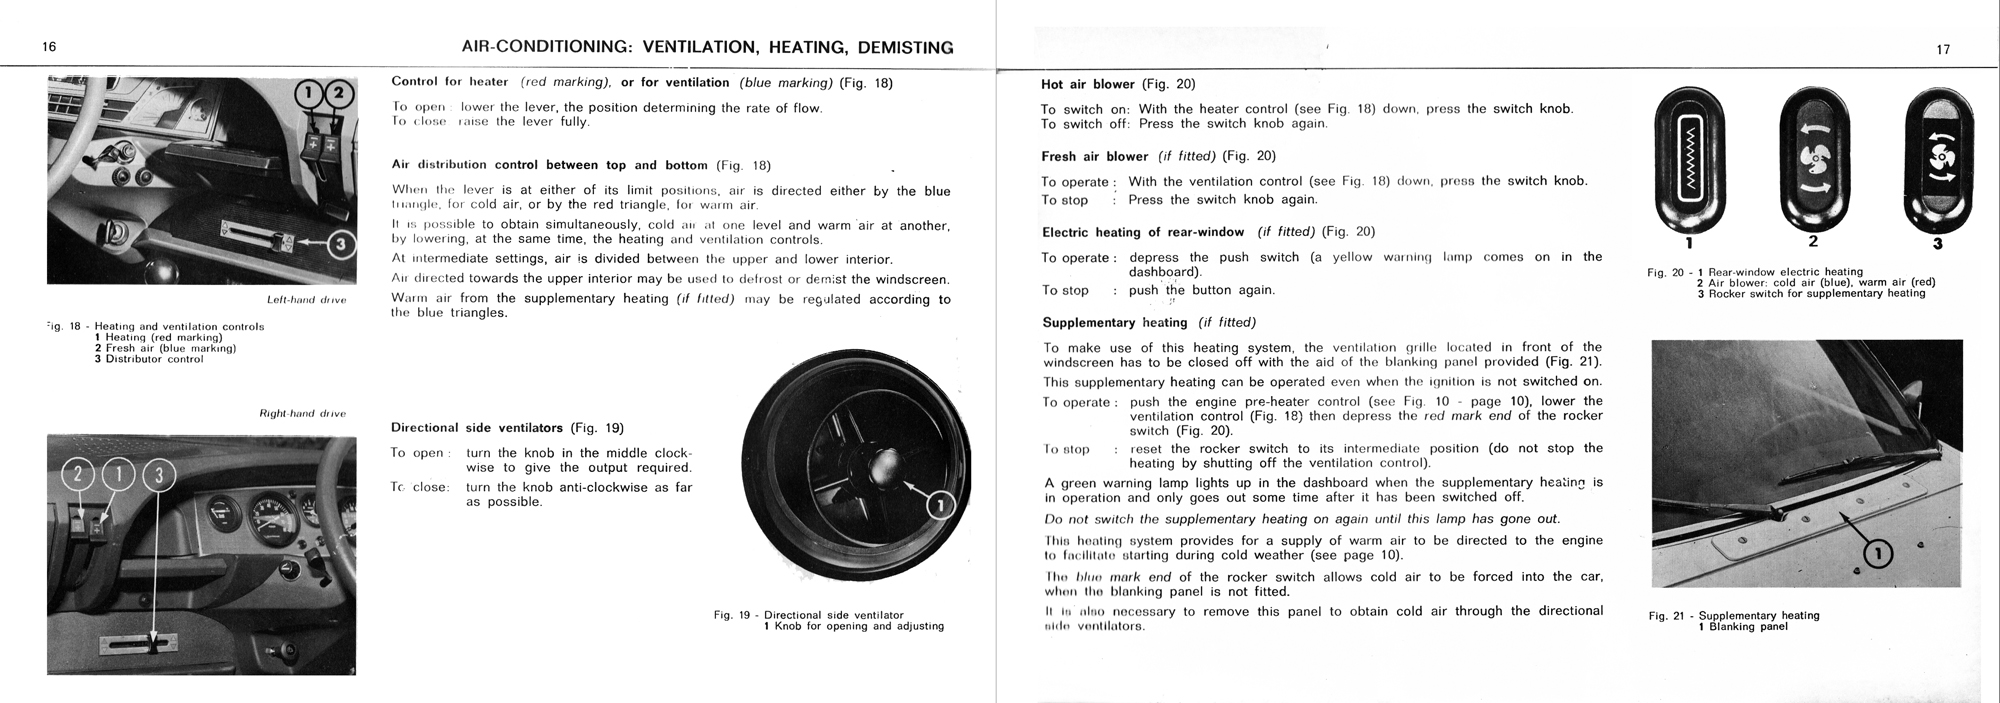 1972 Citroën GS owner's manual part 1